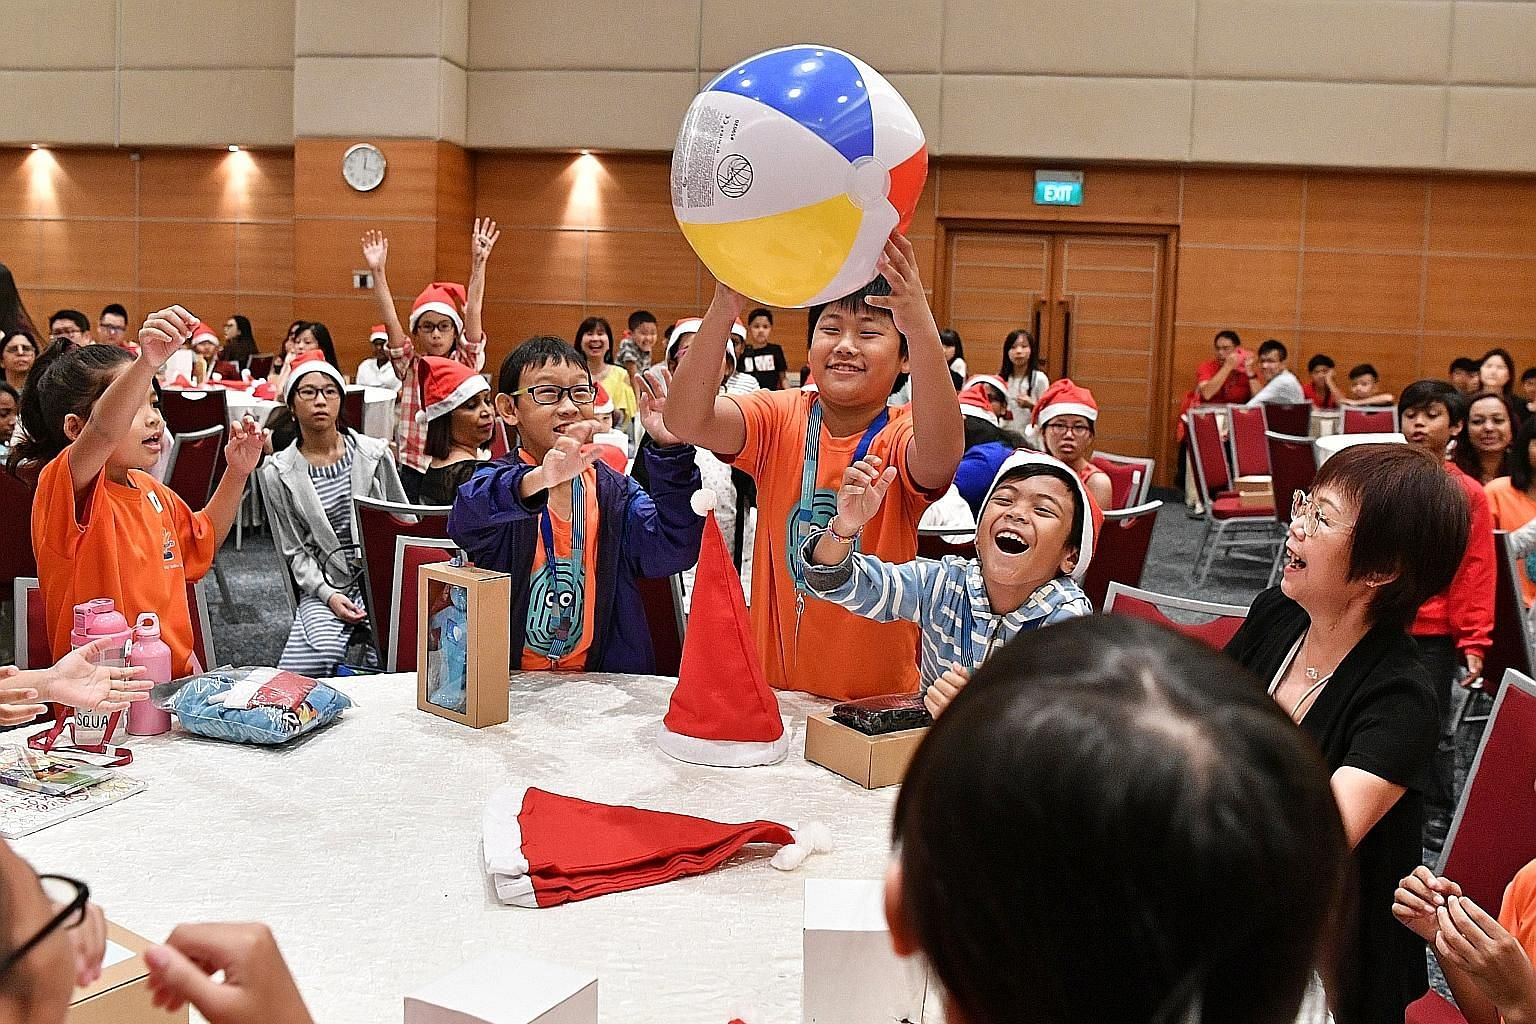 Reuben Tan, 10, from Care Community Services Society enjoying a game at a lunch party yesterday hosted by Singapore Press Holdings (SPH). He was among 160 beneficiaries from charitable organisations and their caregivers who were treated to games and